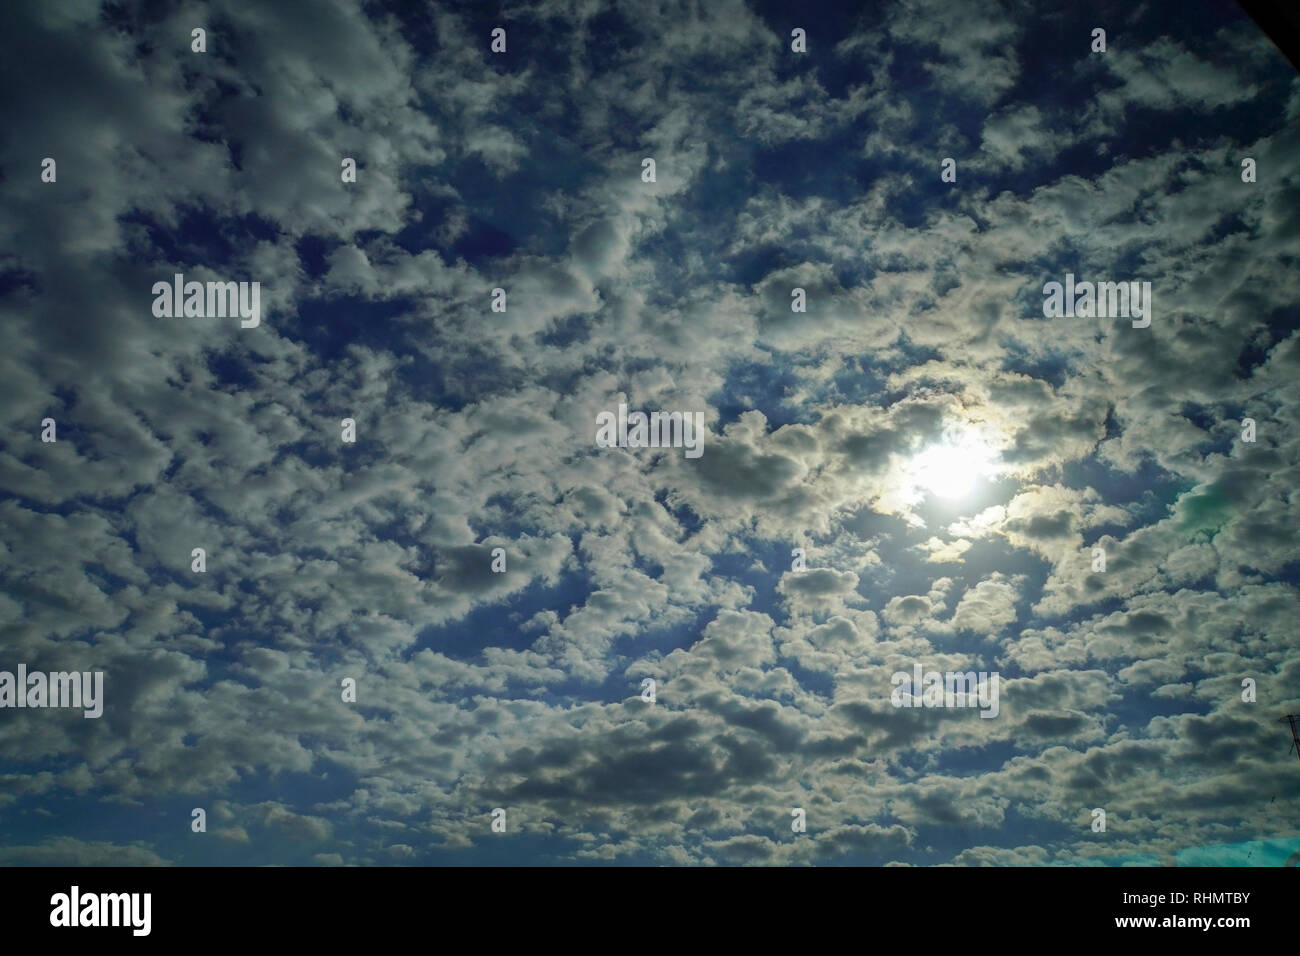 Abstract cloudscape photographed at twilight in Osaka, Japan - Stock Image